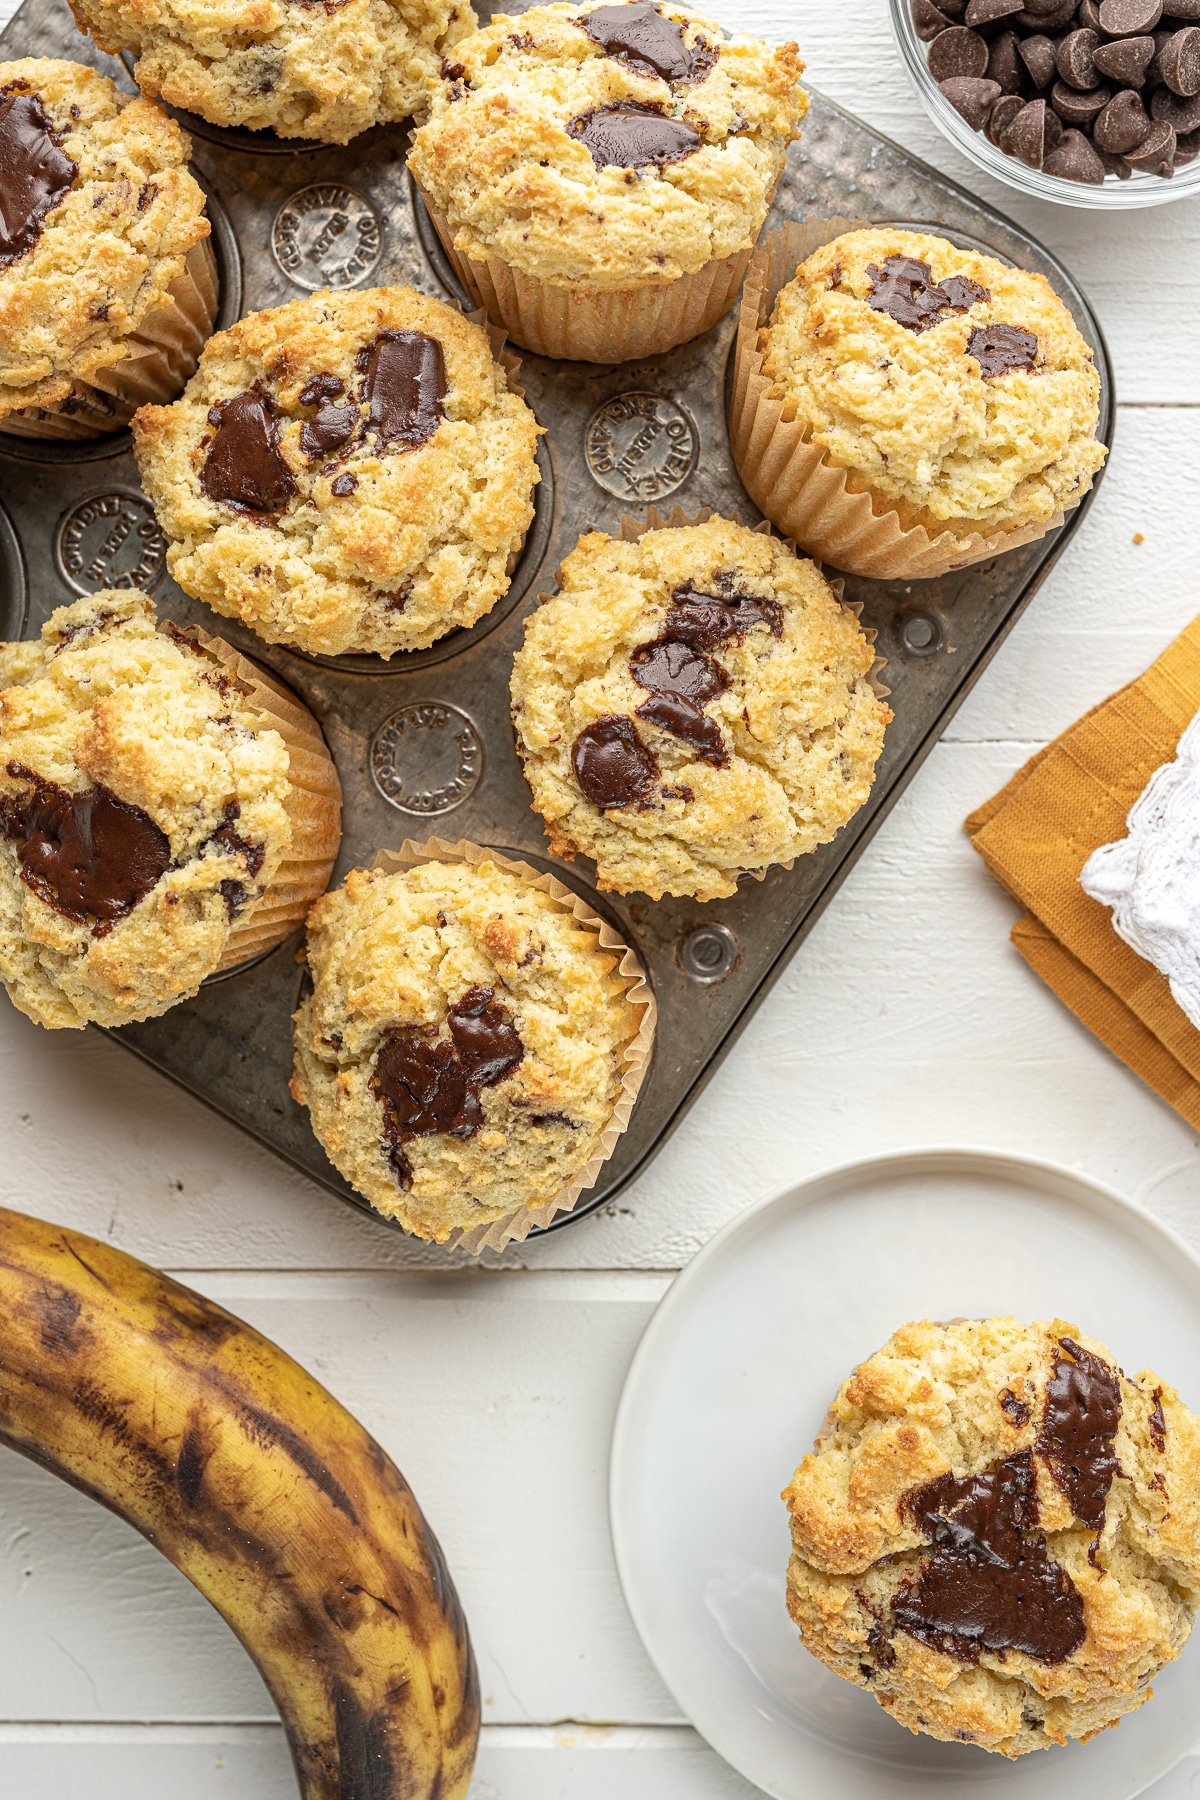 A top-down display of muffins with a ripe banana and a yellow napkin.